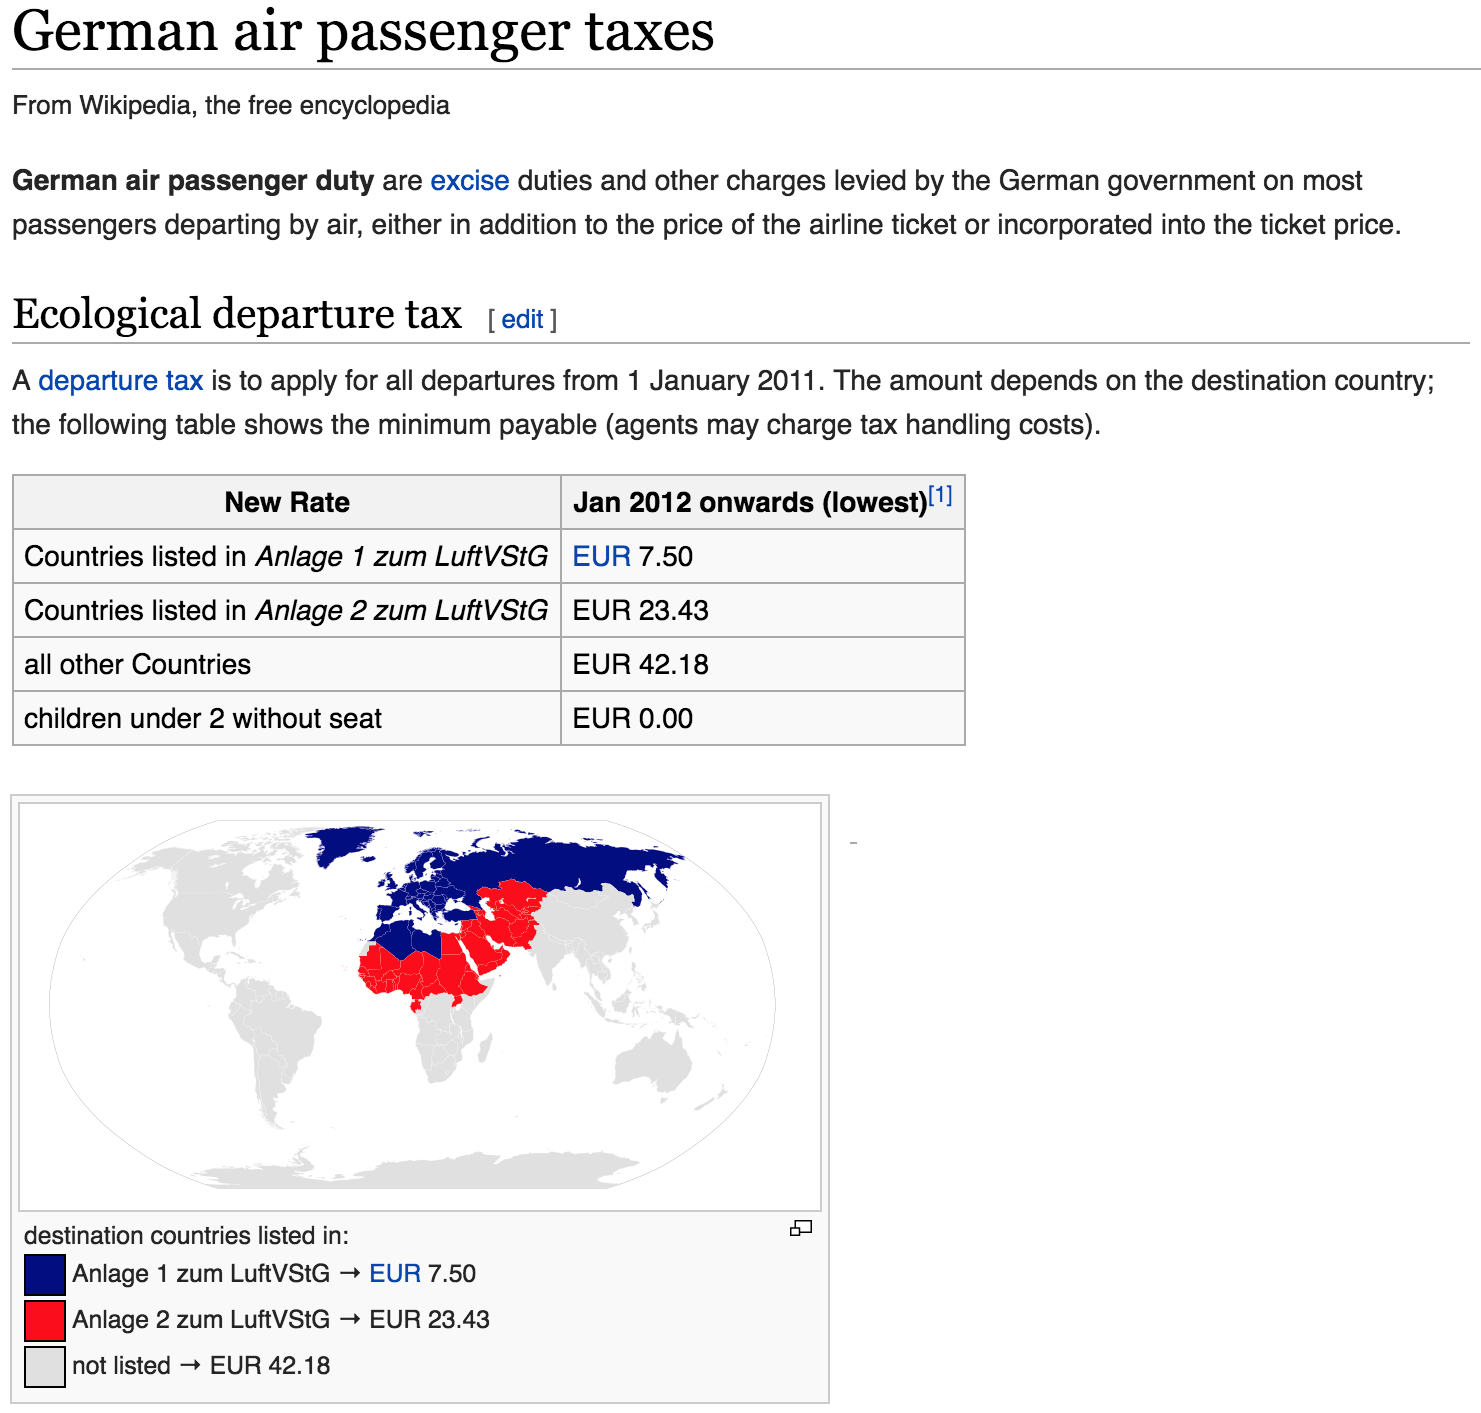 German air passenger taxes